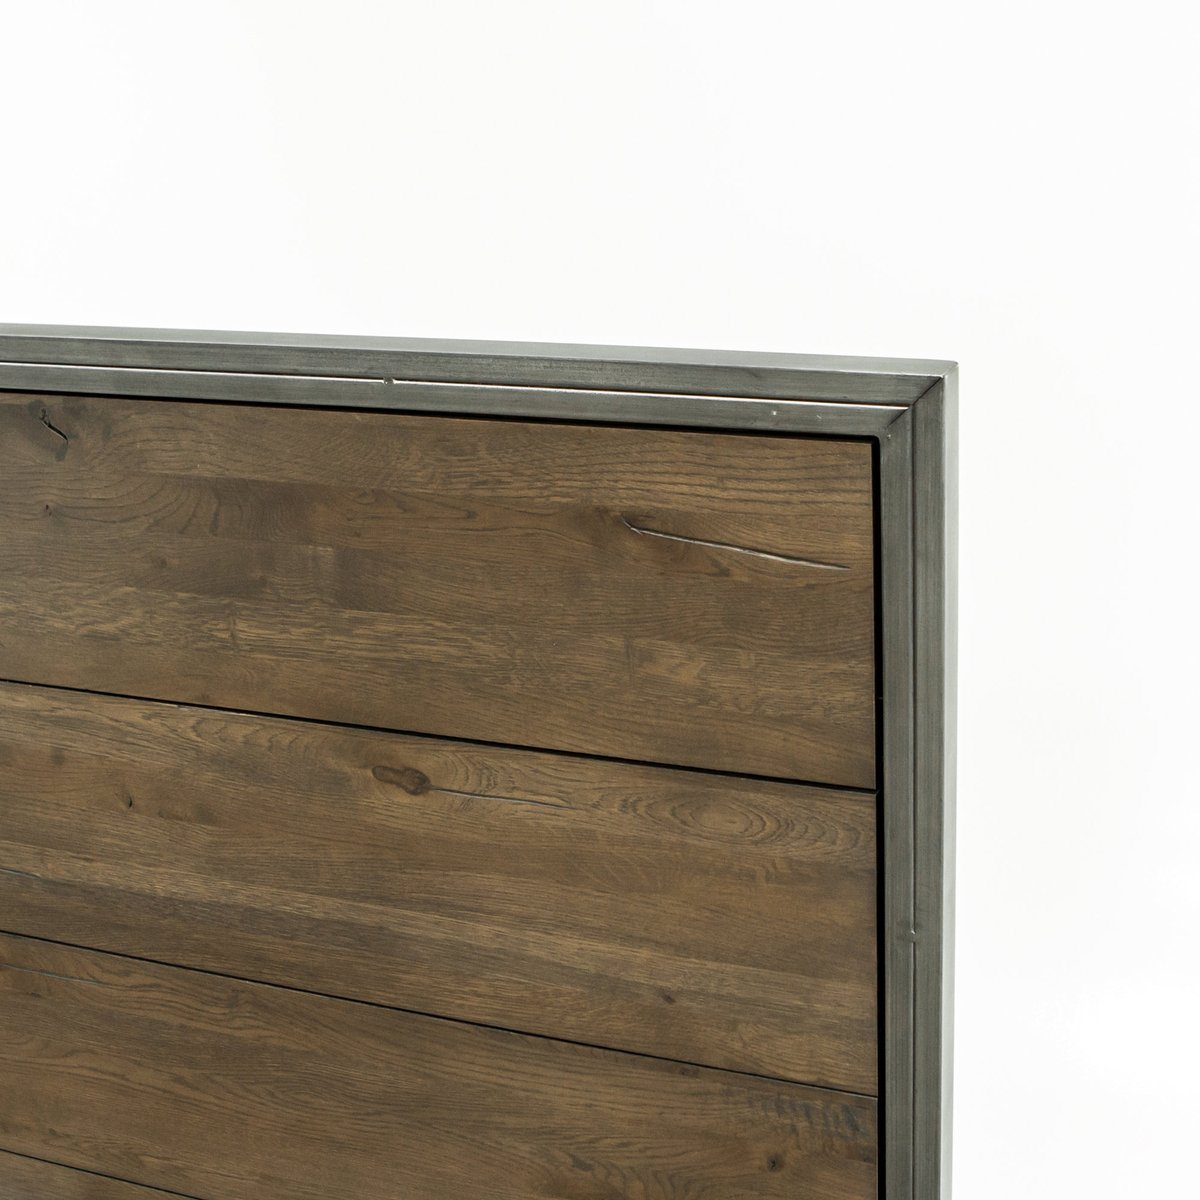 Woodcraft Modern Solid Wood Bed - King/Queen | Calgary's Furniture Store